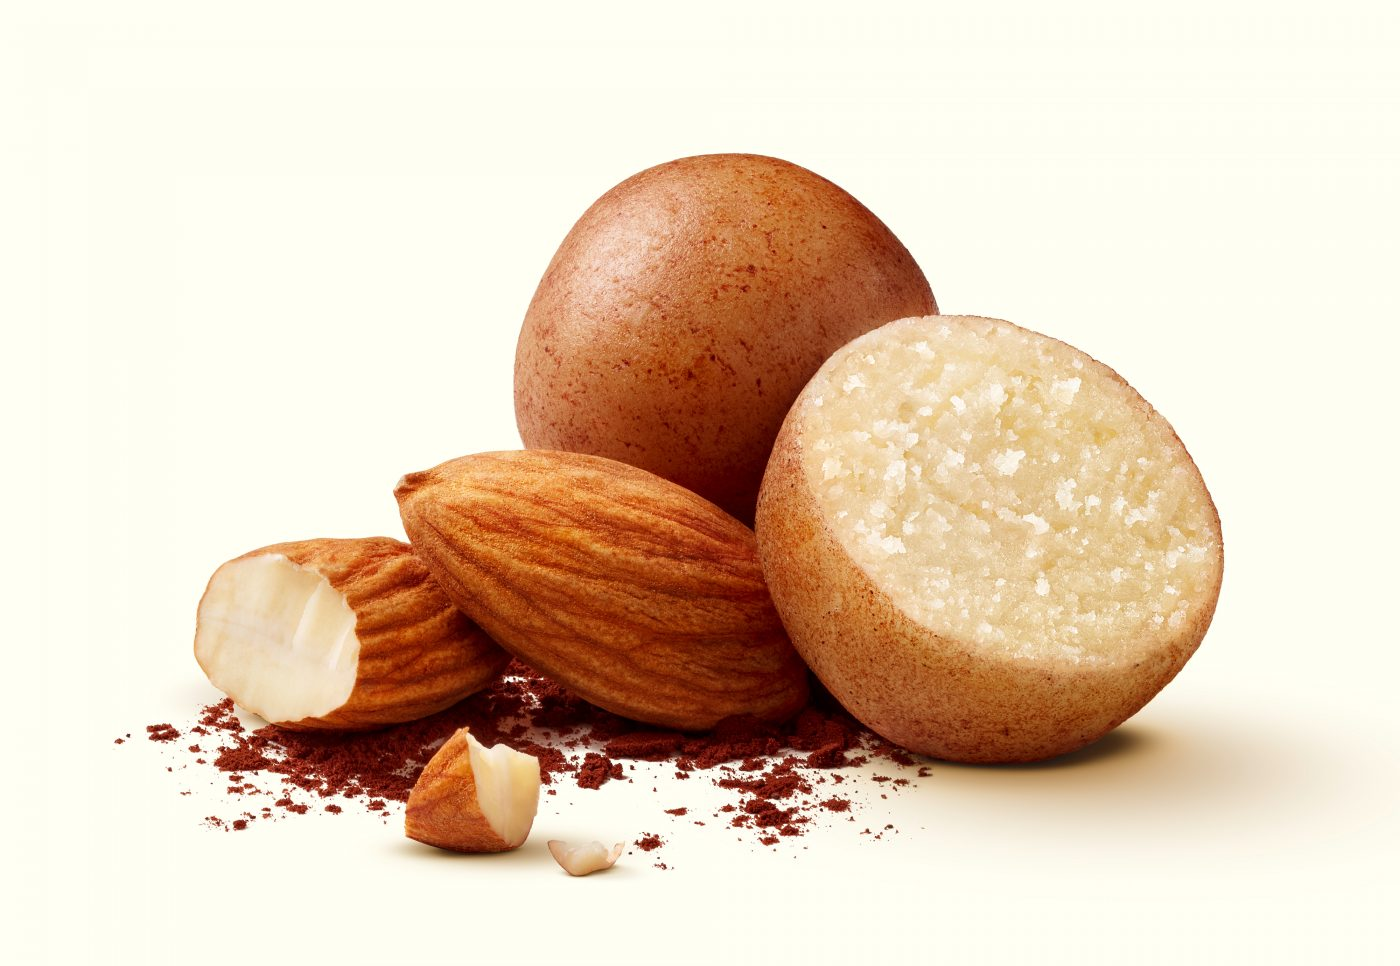 confectionery, packaging photography Marzipan with almond